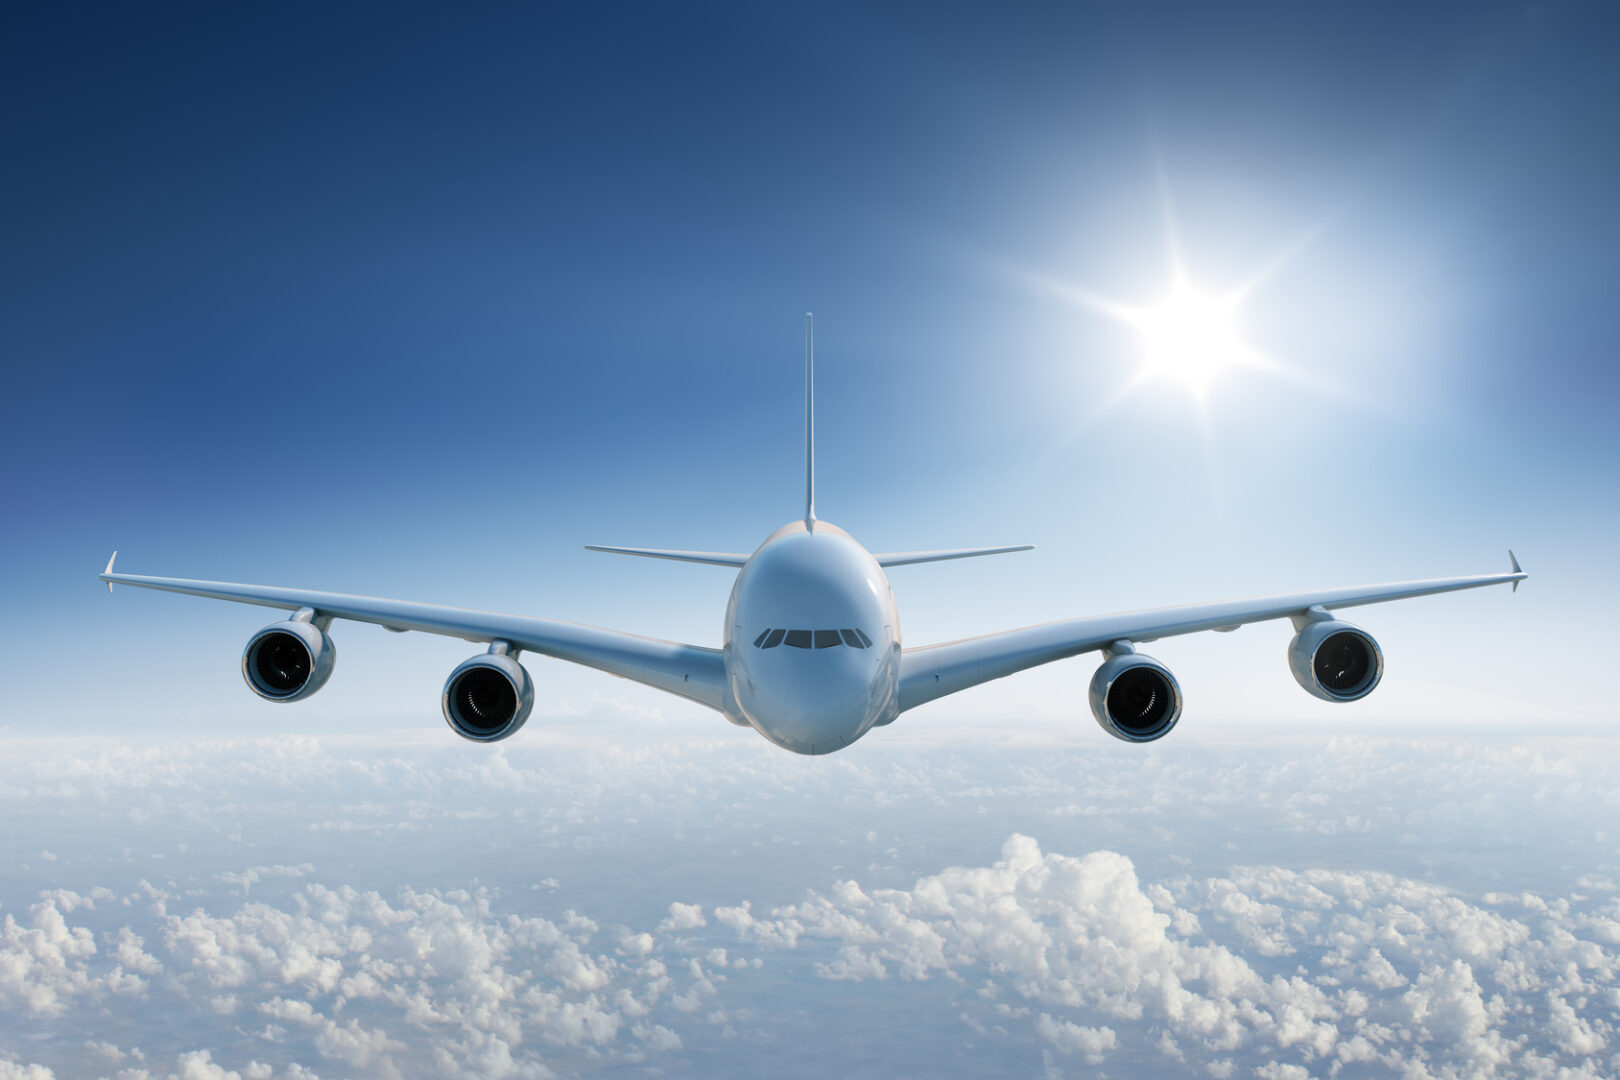 Big airplane flying above the clouds, towards the camera with the sun in blue sky